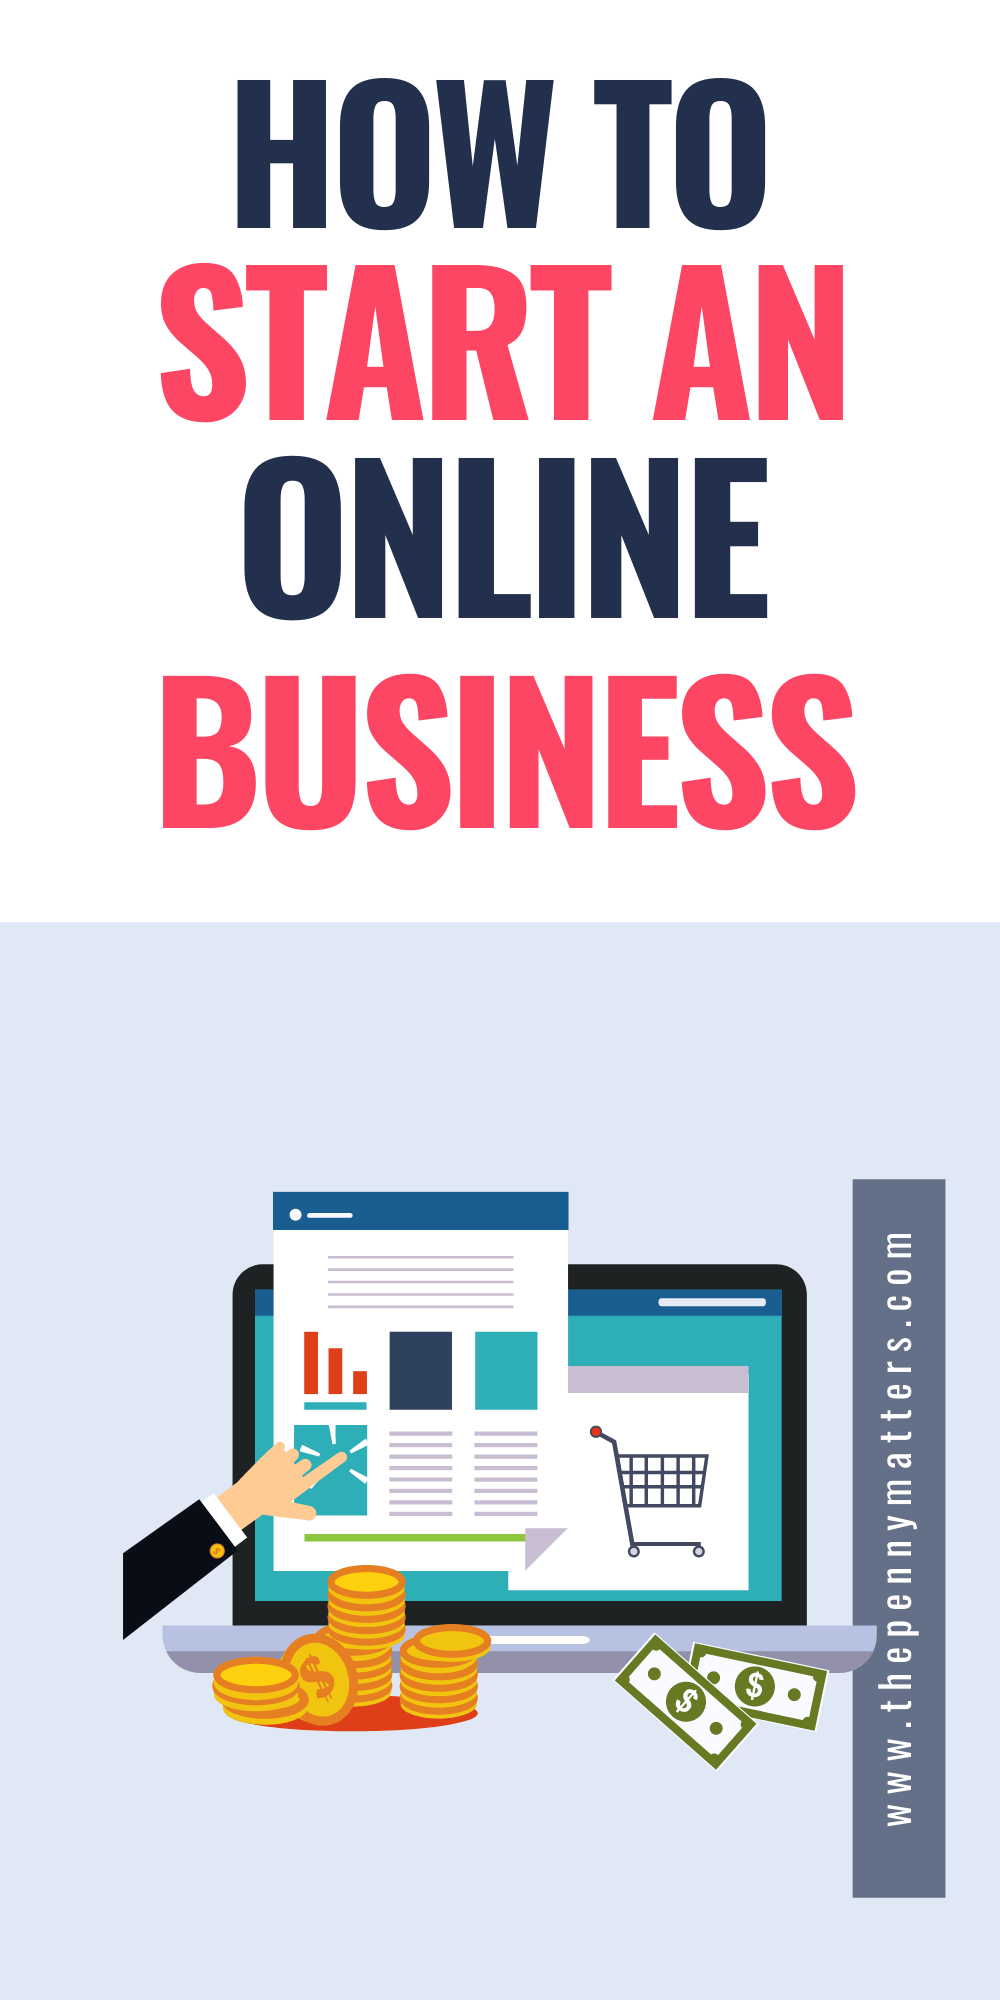 How to Start an Online Business from Home in 9 Steps